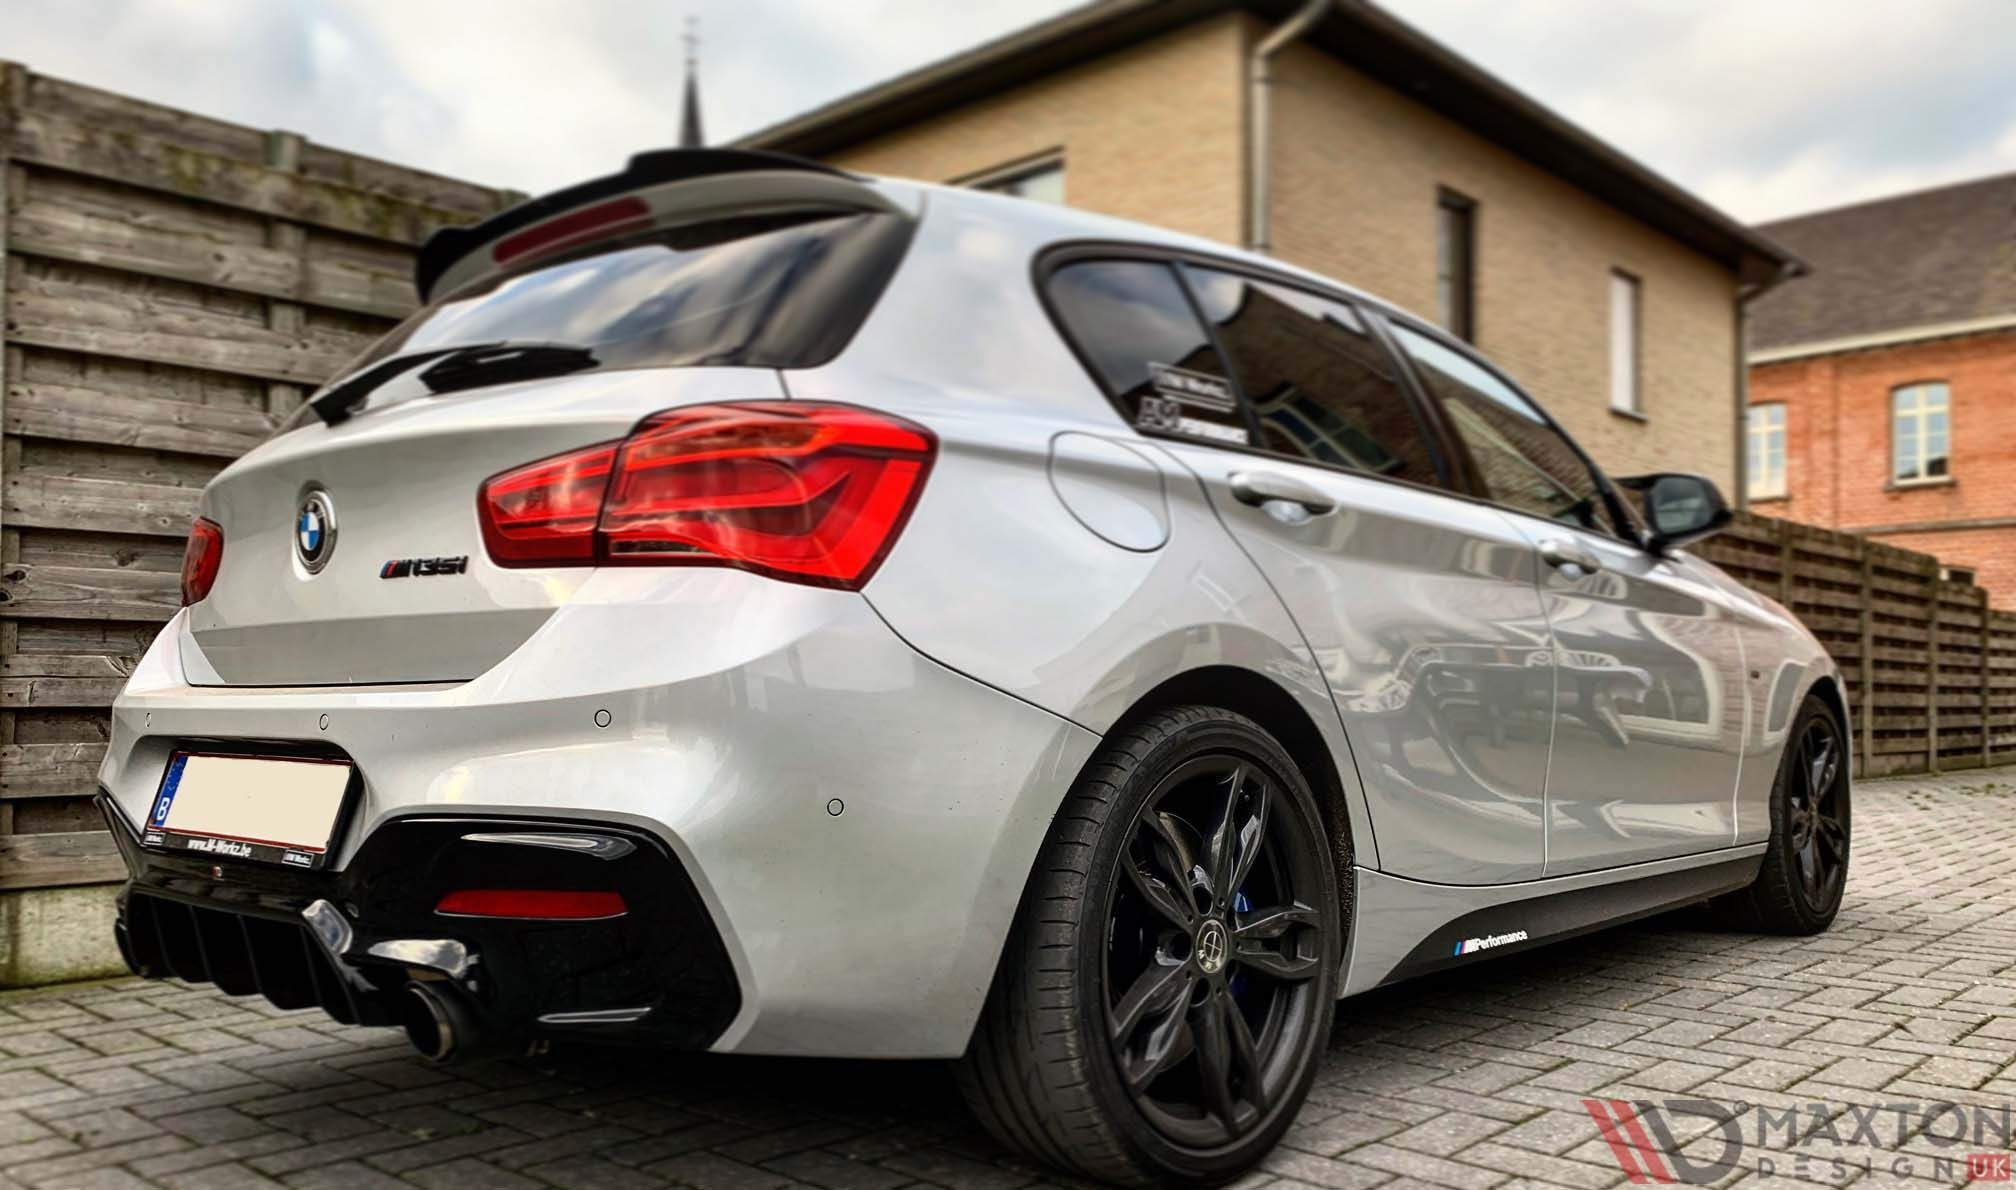 REARly Good lightgrey_m135i 🇧🇪 (Instagram) and our Rear